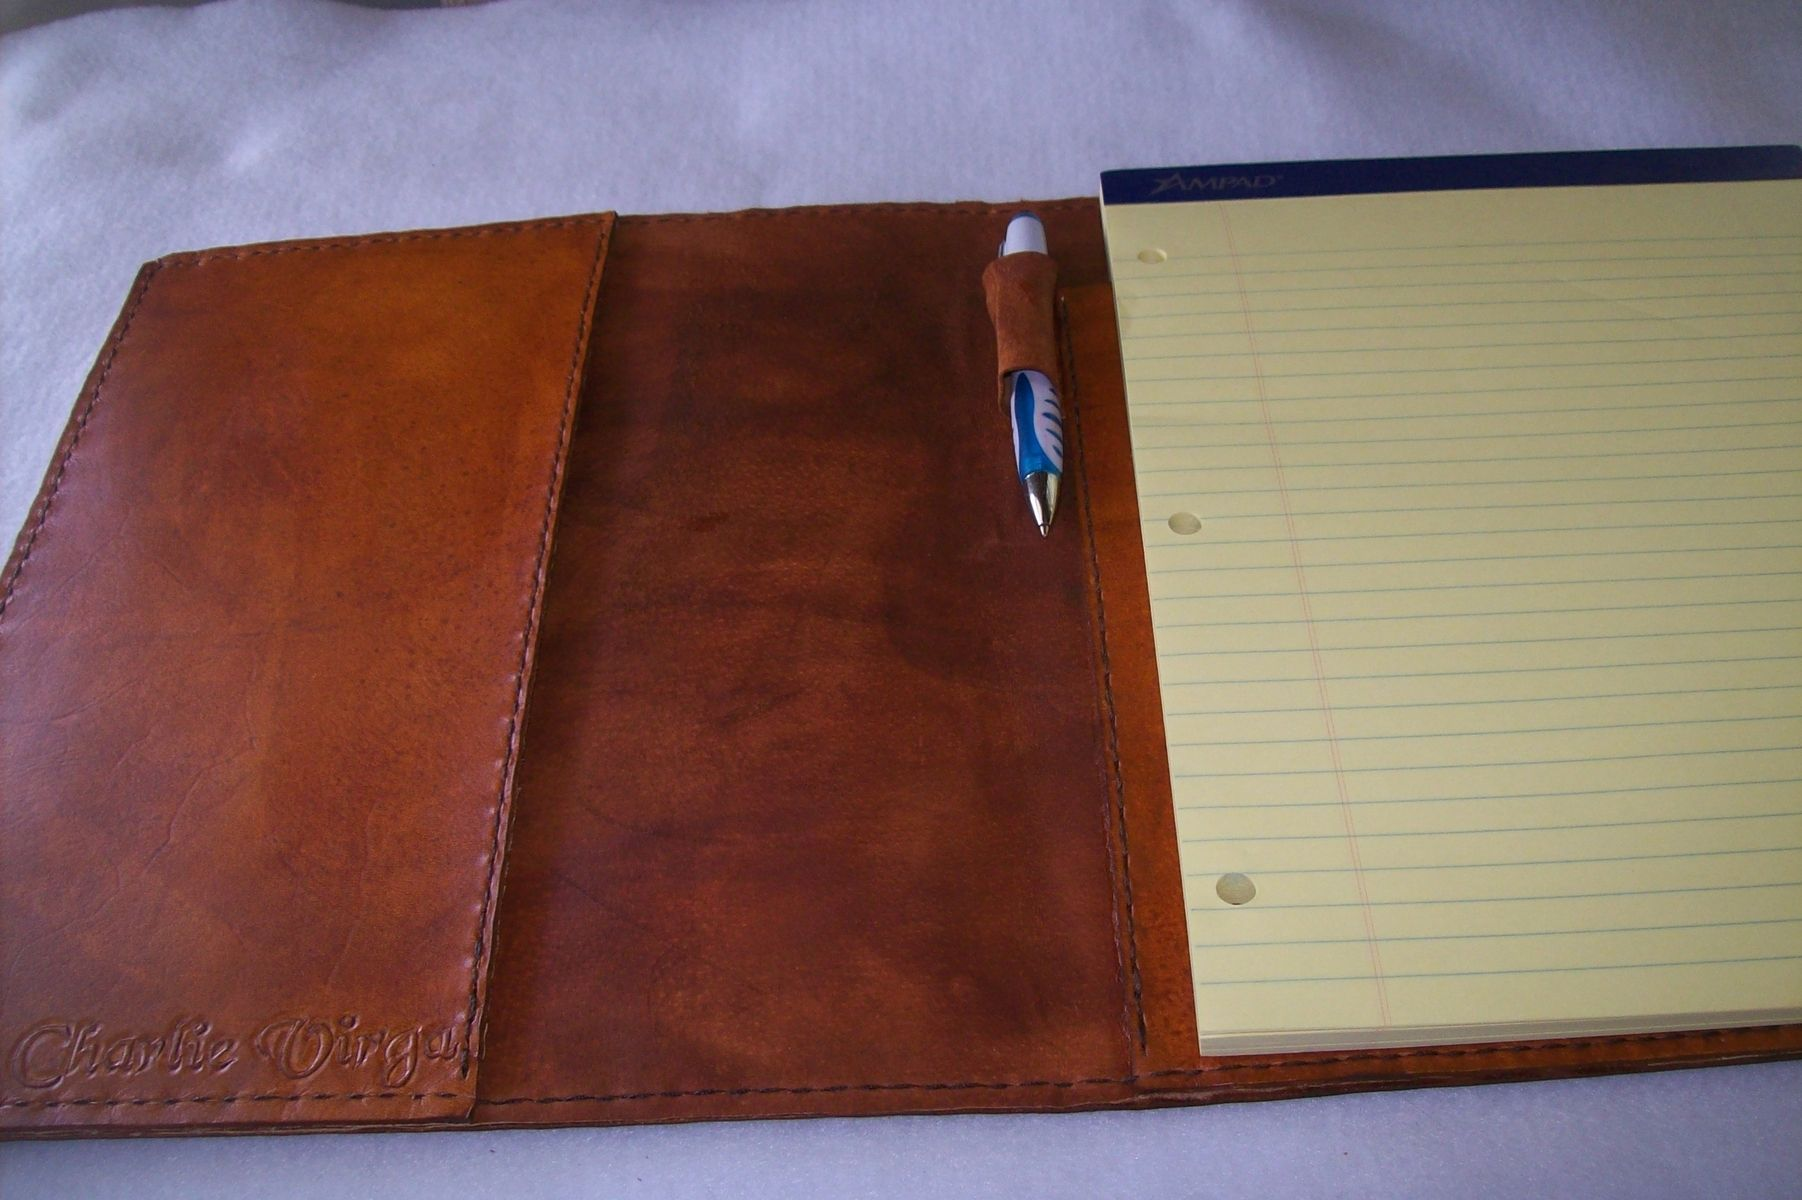 Custom Leather Portfolio With Diamond Sheridan Design In Canyon Tan By Kerry Phipps